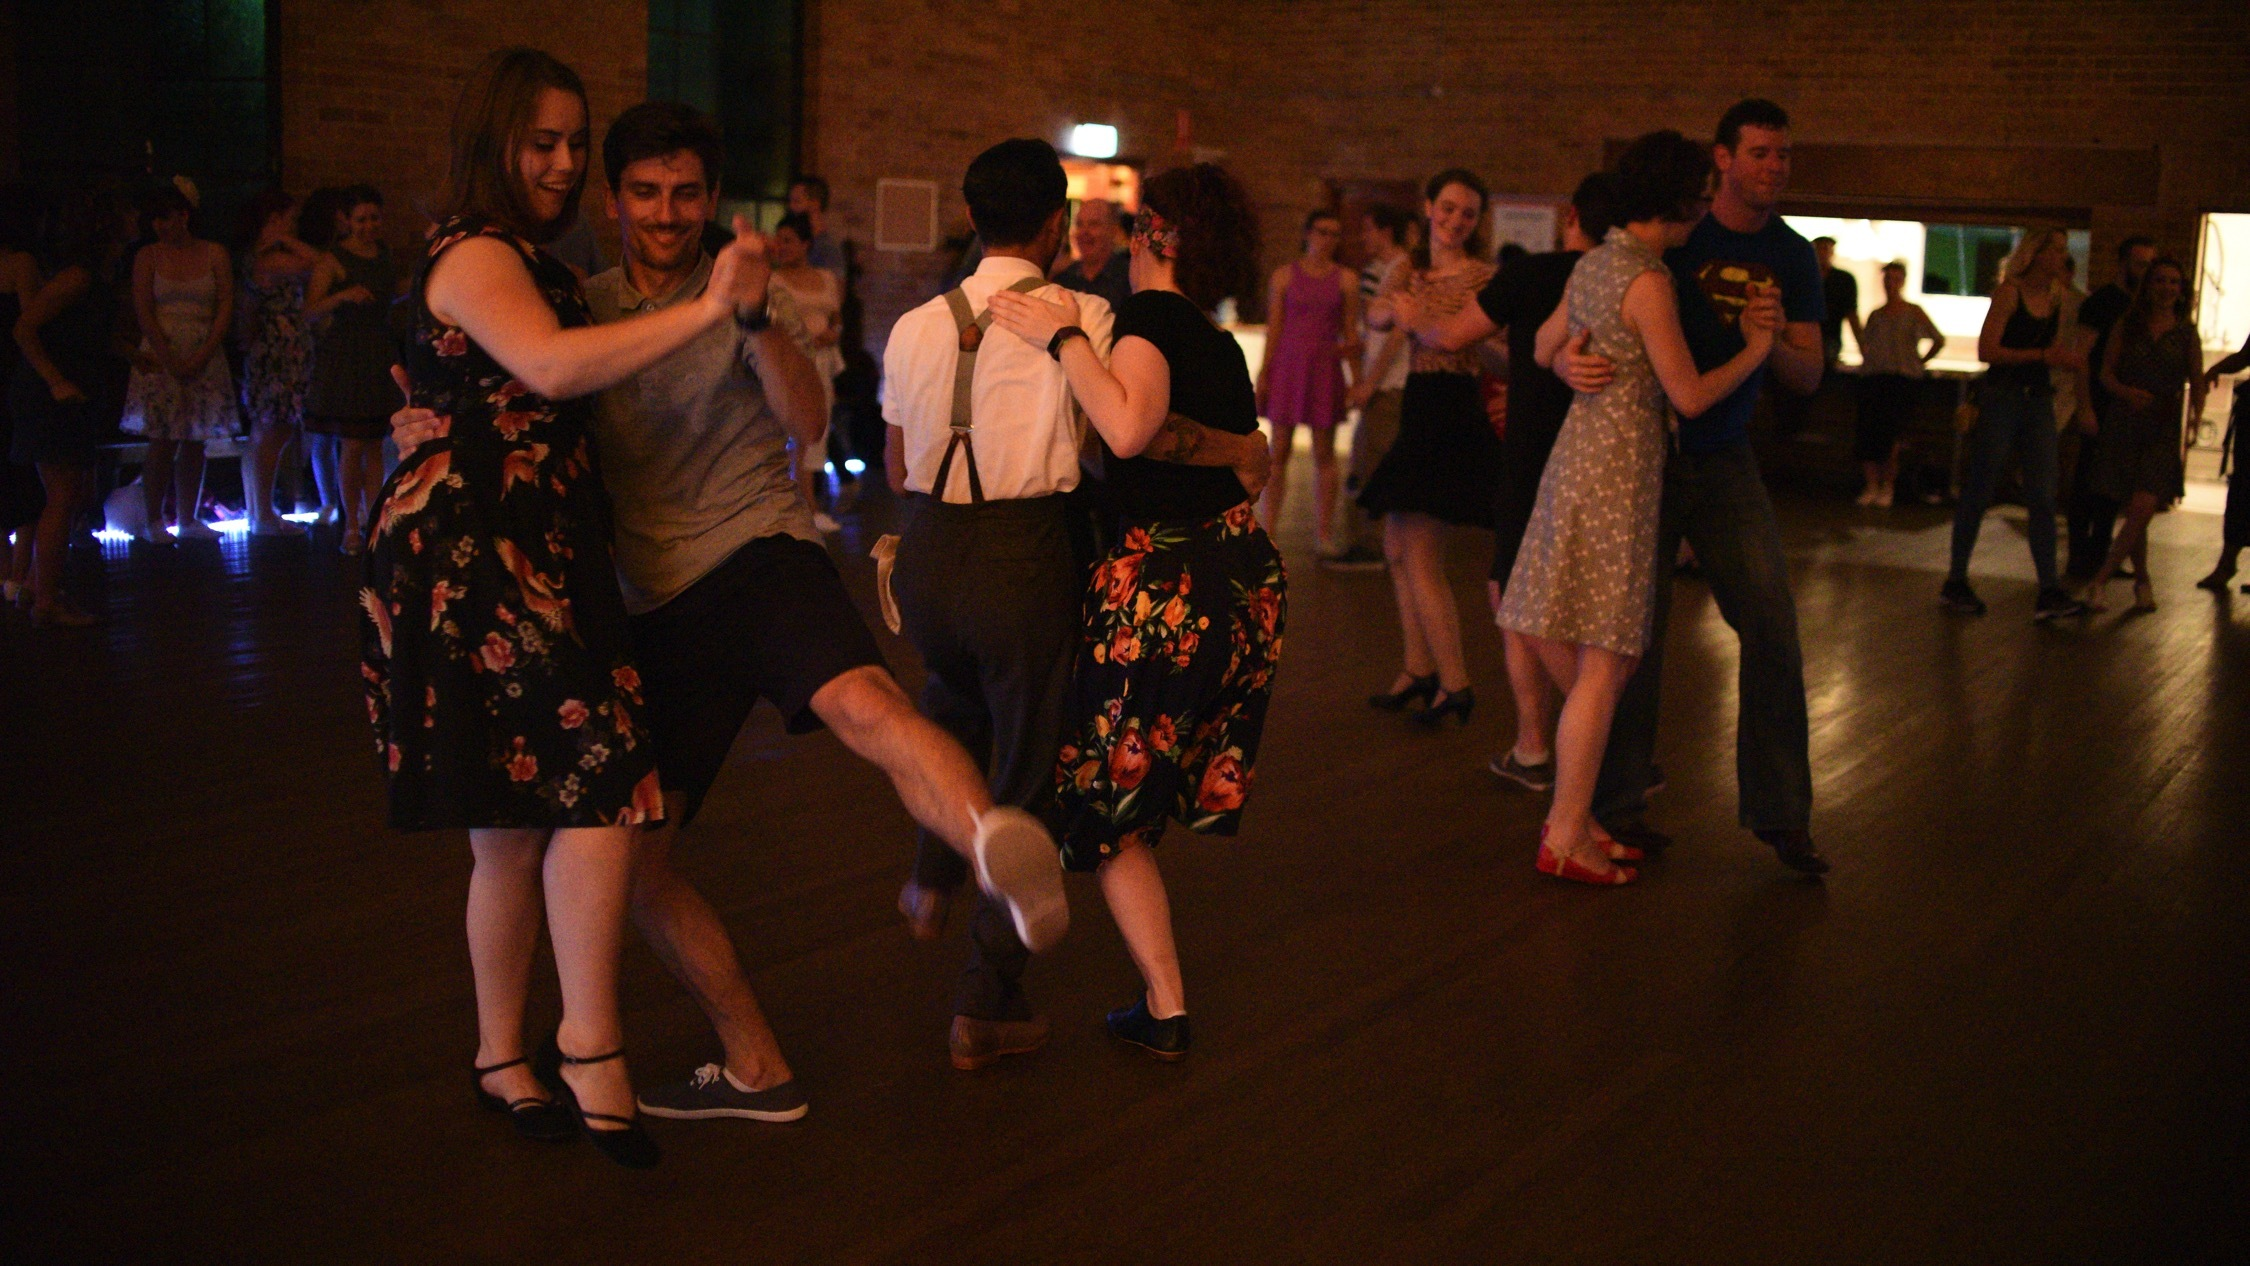 People dancing in a group at Swing Patrol Dance Class